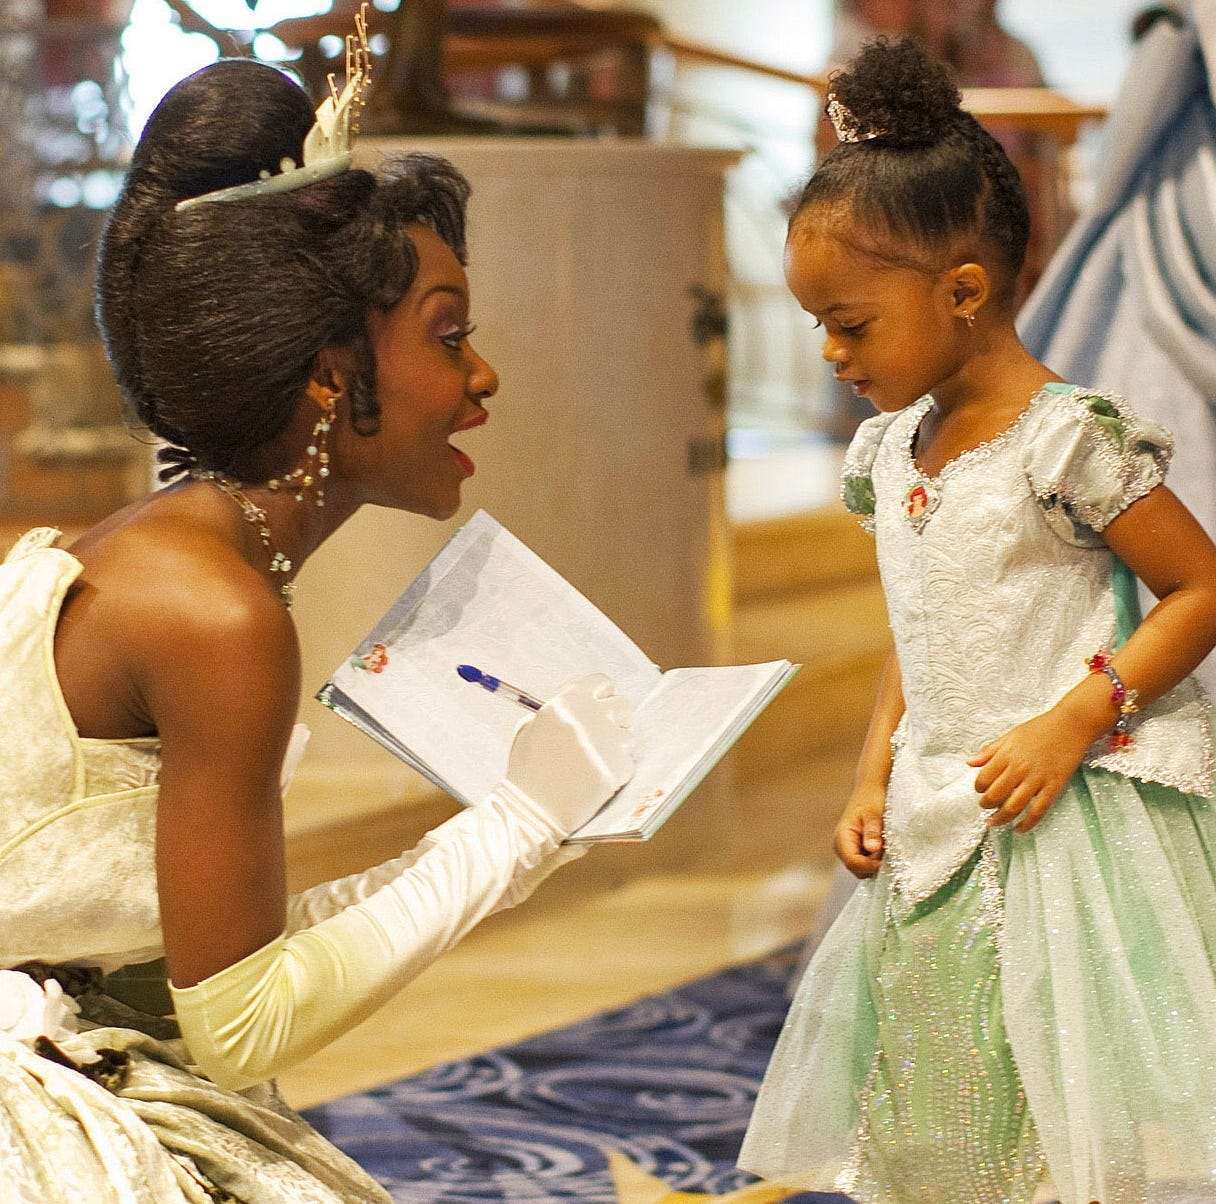 A family of 5-year-old twins in the United Kingdom wants to hire a nanny to dress as a Disney princess every day.